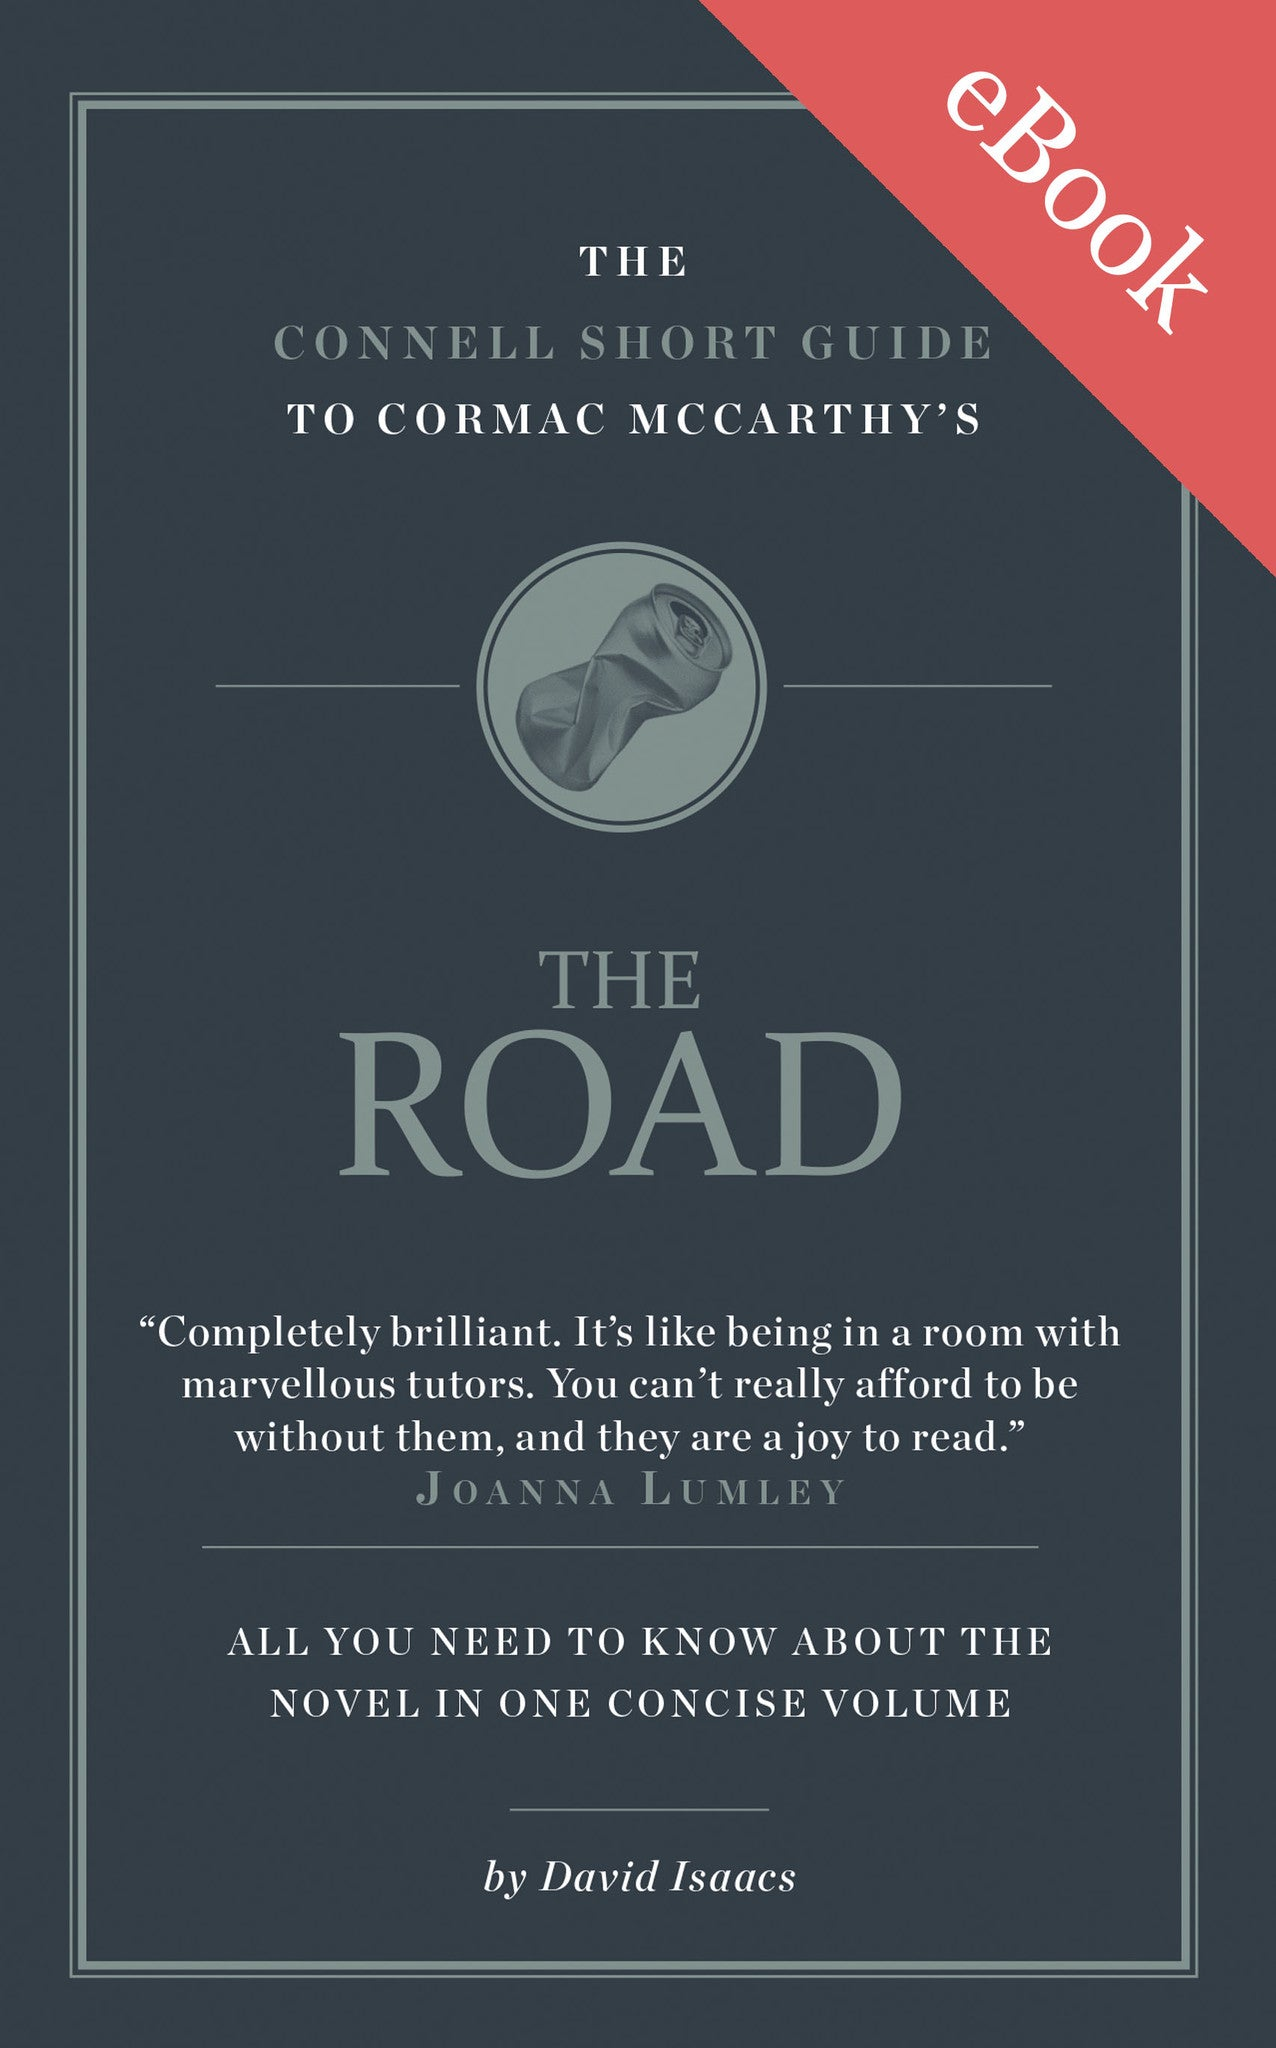 essay on the road by cormac mccarthy Essays and criticism on cormac mccarthy's the road - critical essays.